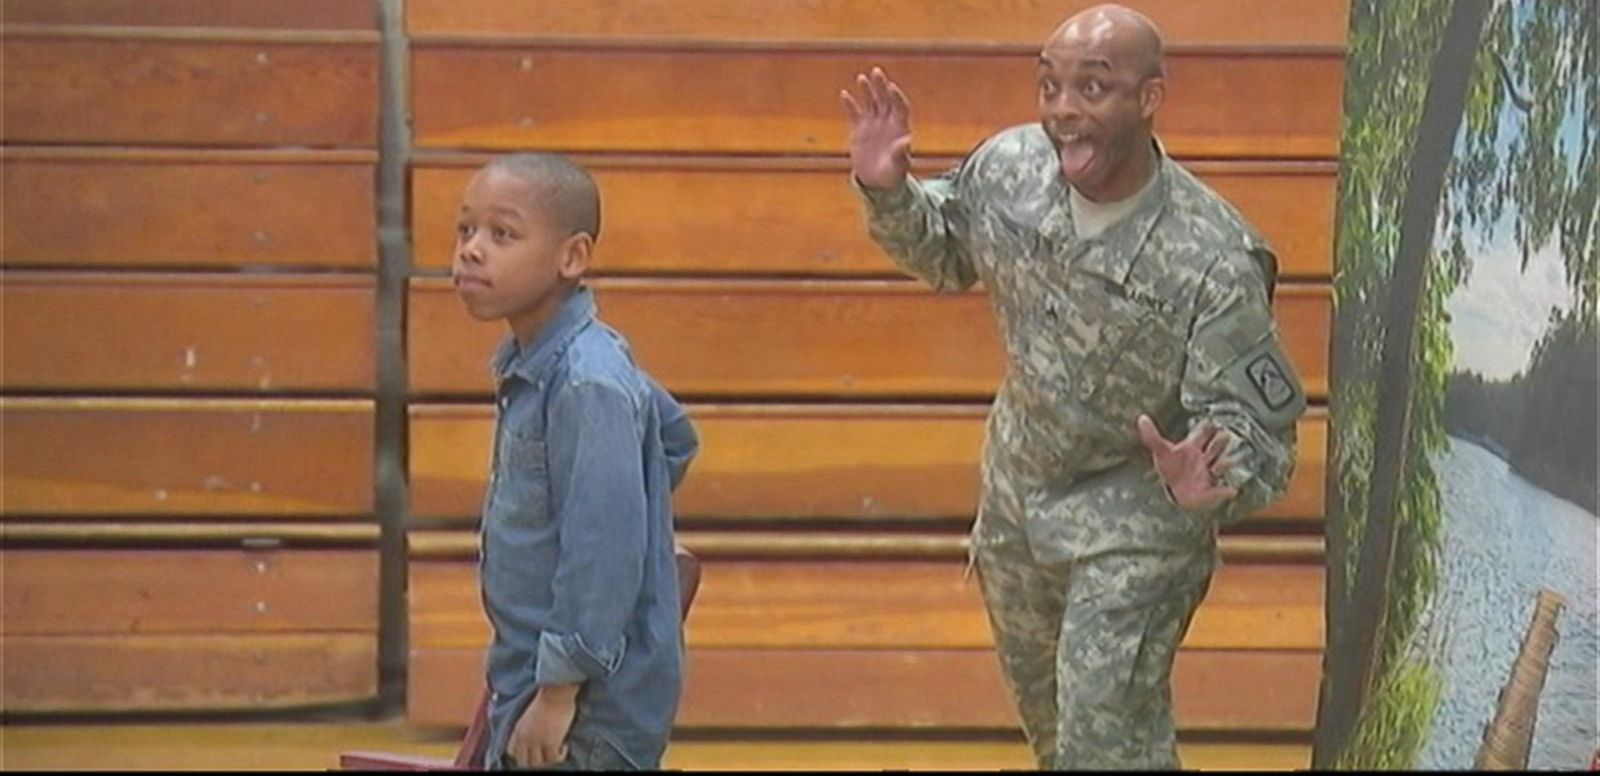 VIDEO: North Carolina Soldier Surprises Son at School Photo Shoot